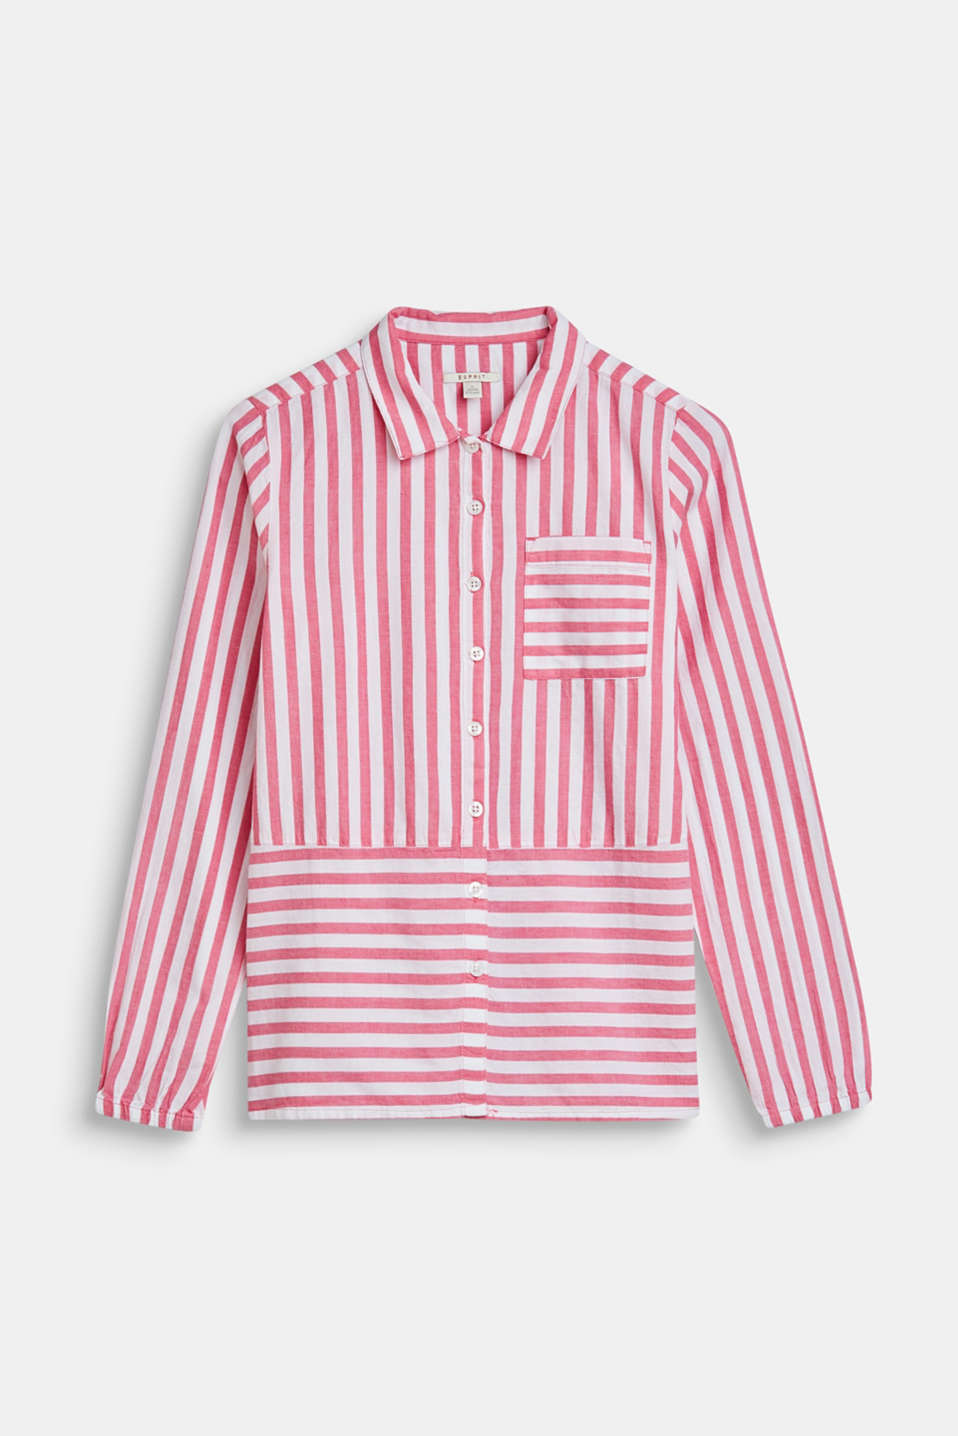 Esprit - Blouse with striped pattern, 100% cotton